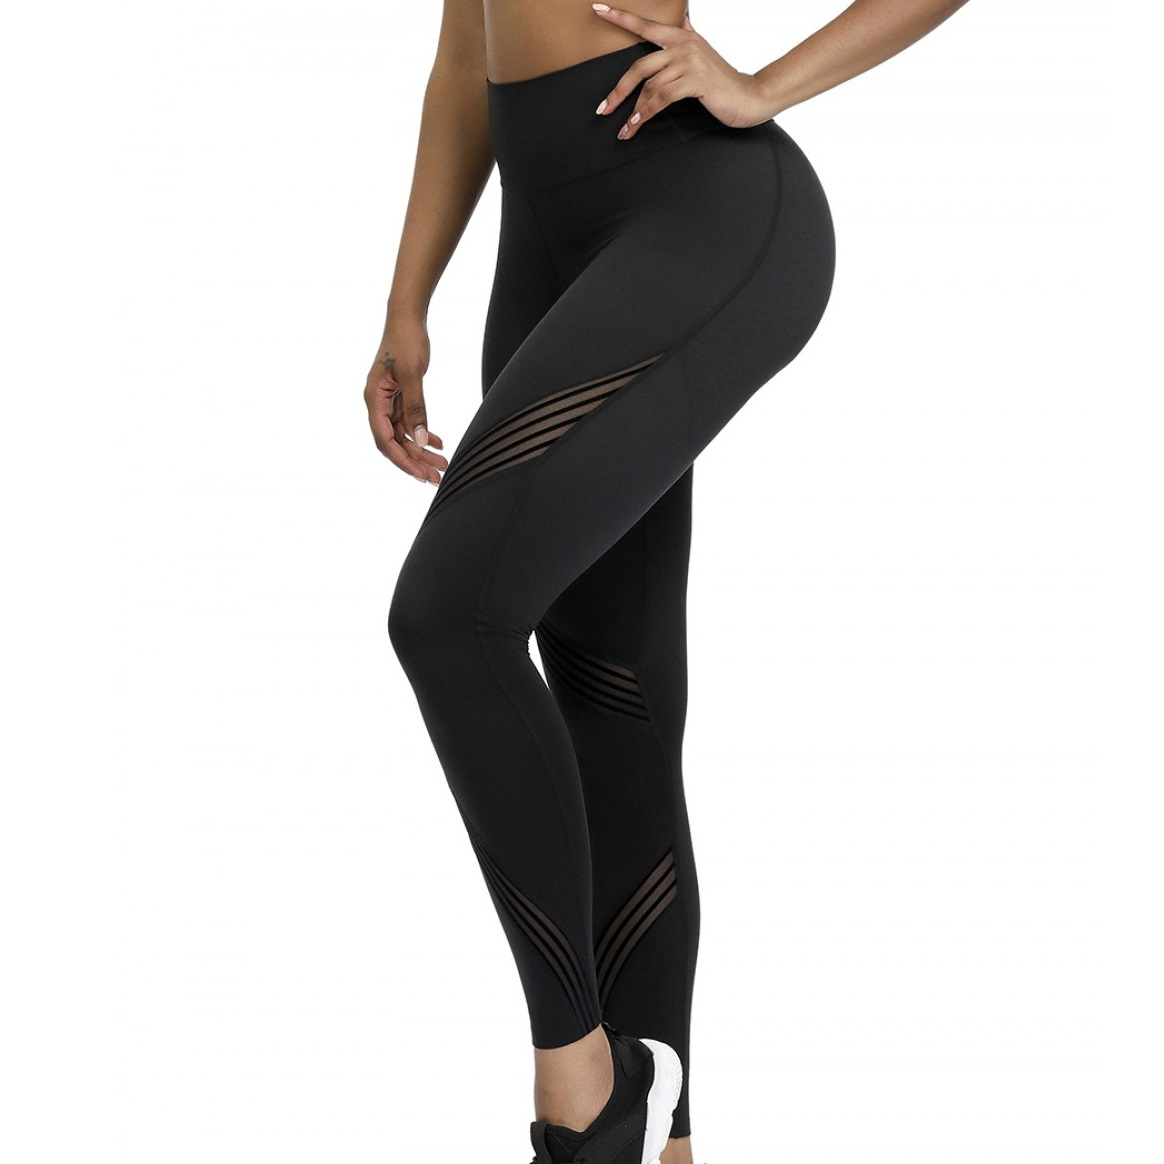 Alexandra 3D Print High Waist Tech Leggings.